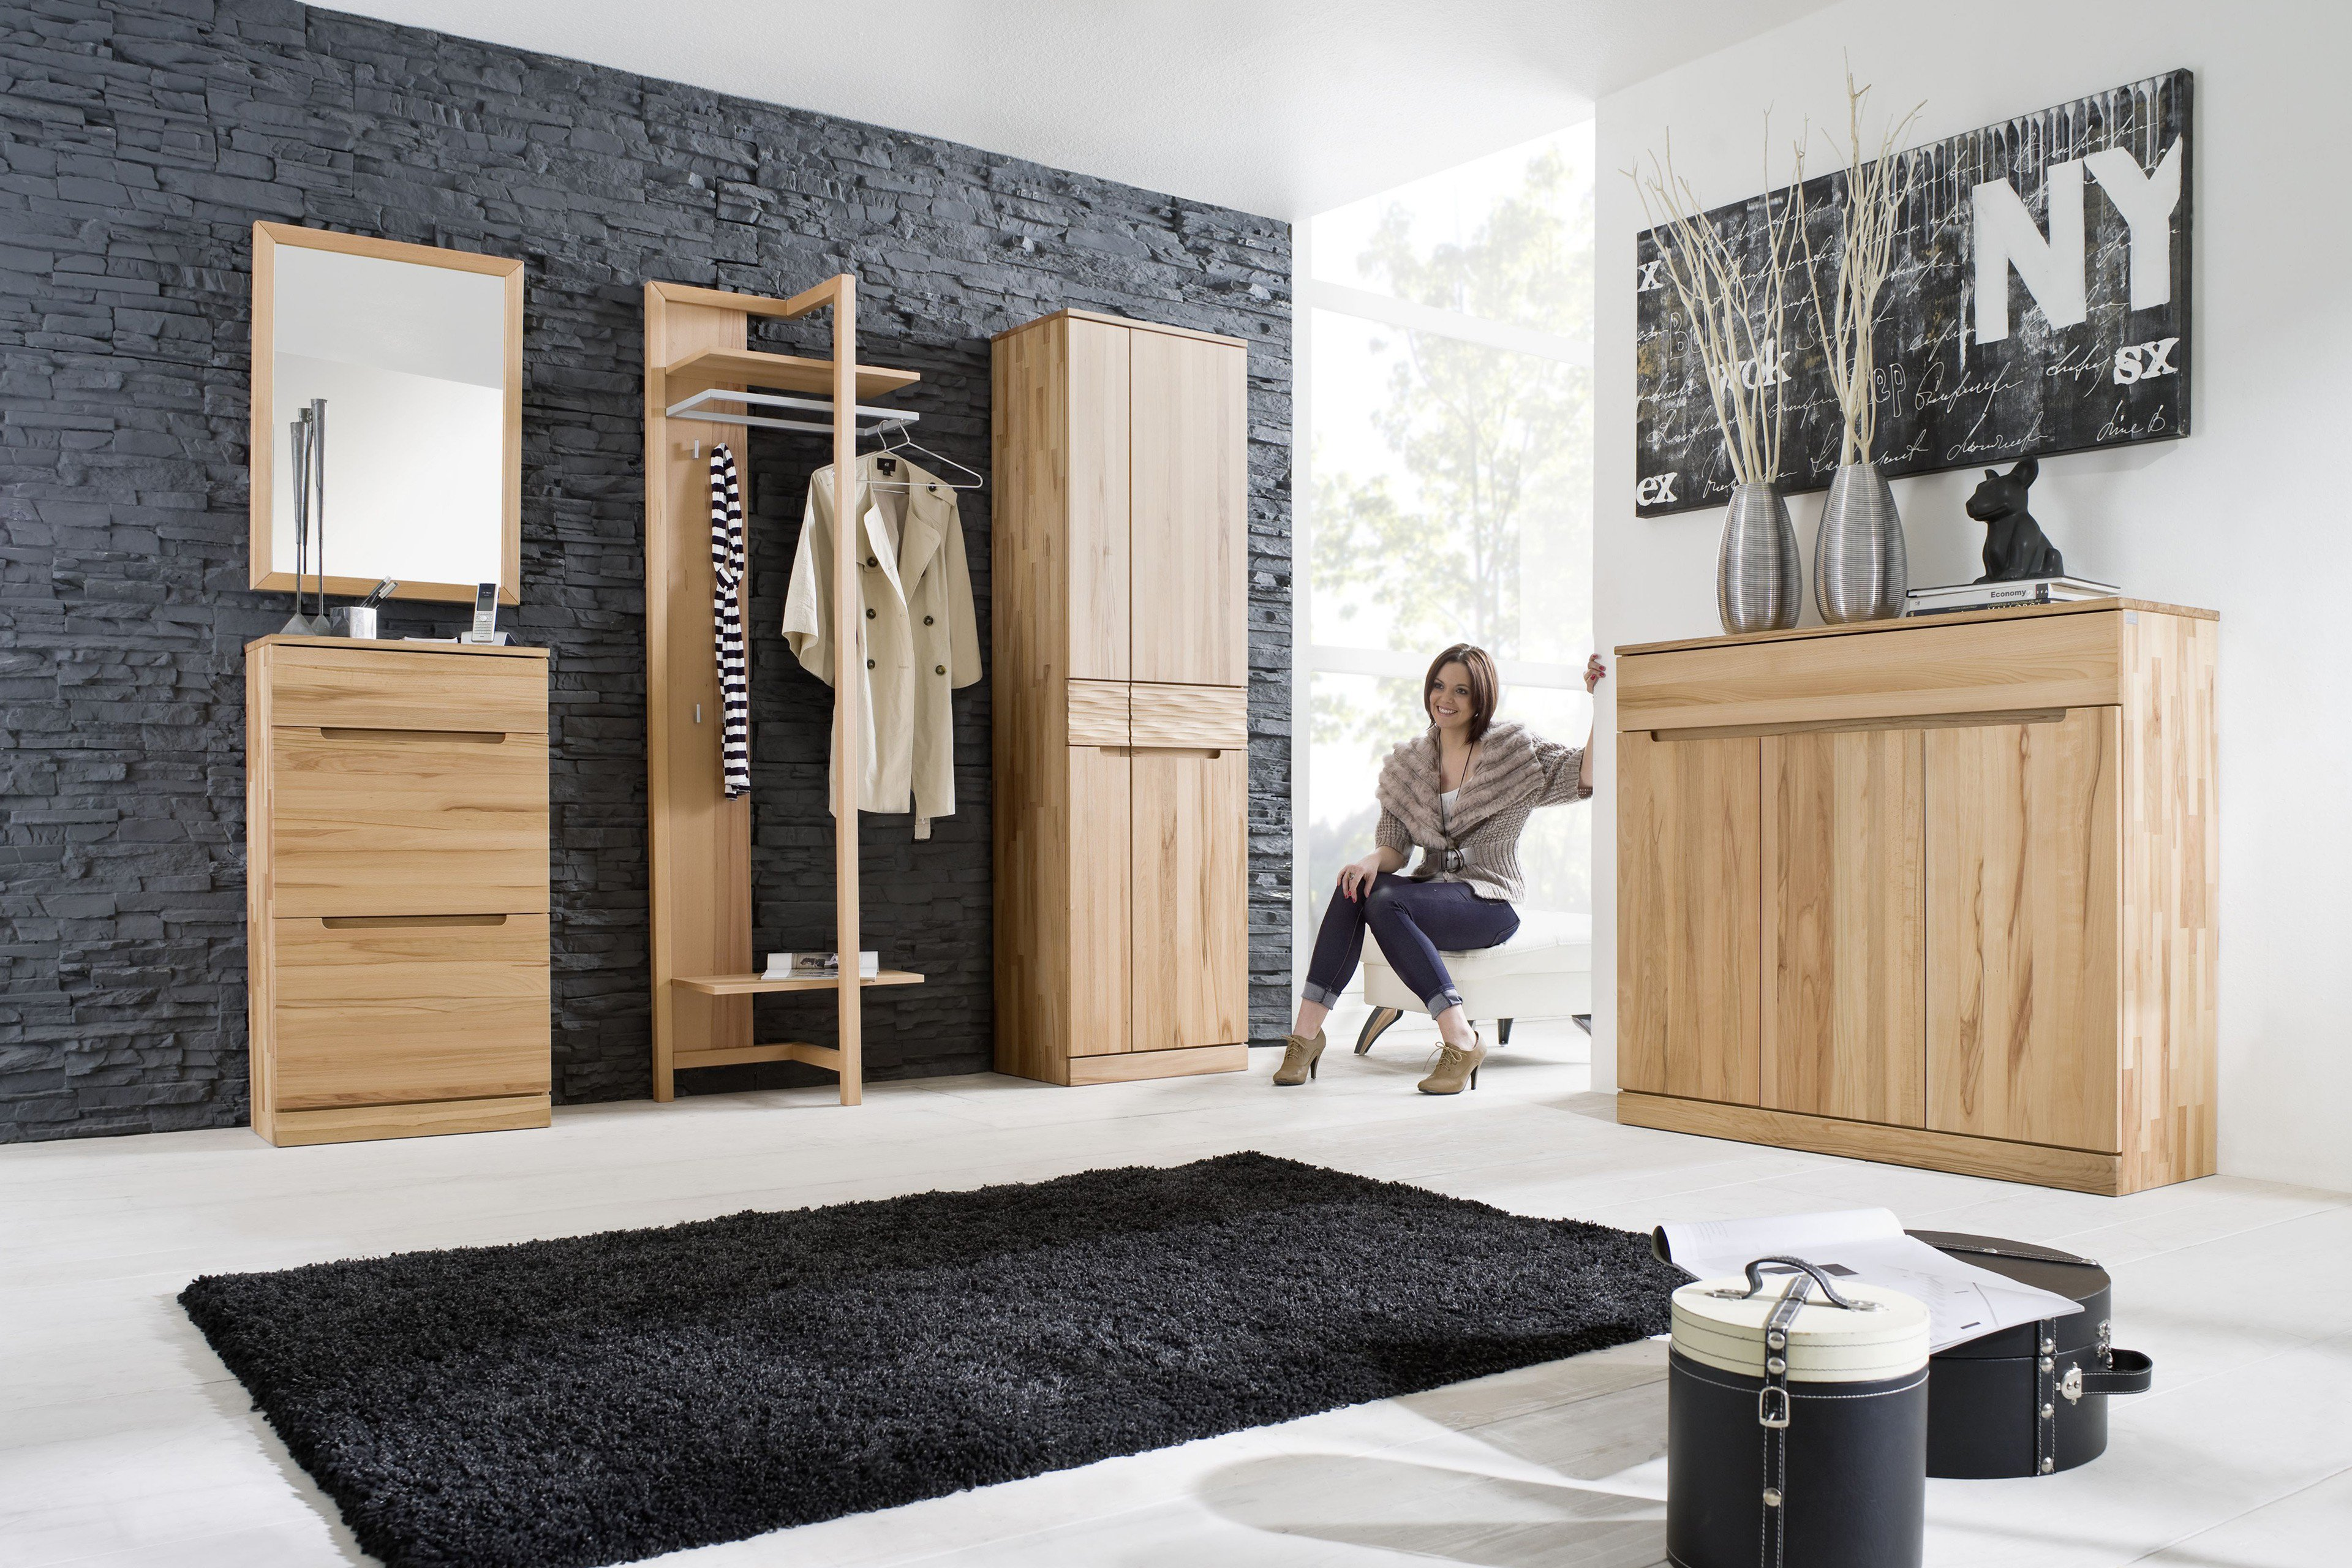 garderobe arcona aus massiver kernbuche von gradel m bel letz ihr online shop. Black Bedroom Furniture Sets. Home Design Ideas